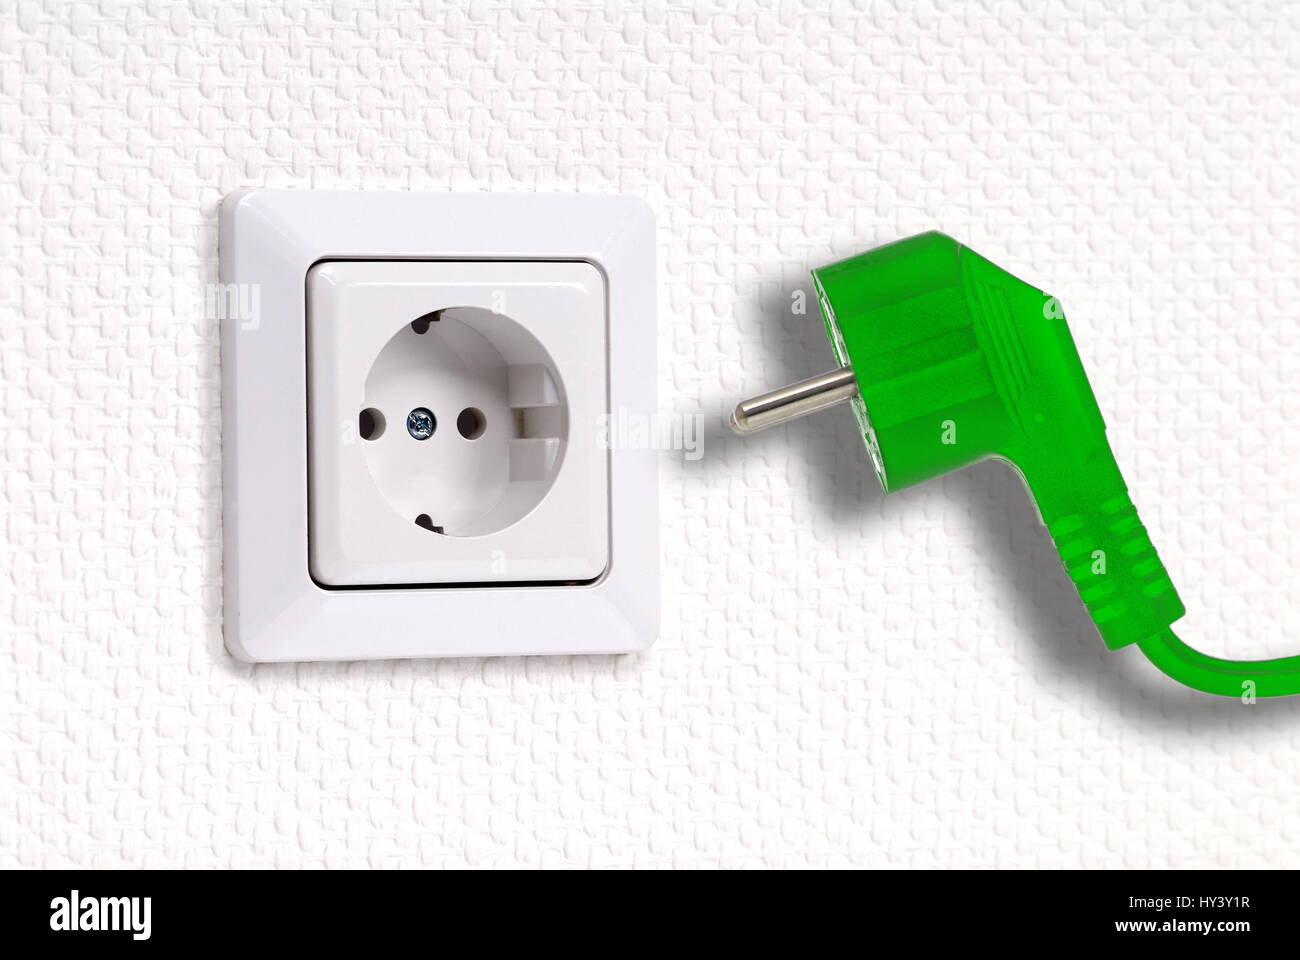 Outlet and green plug, ecological stream, Steckdose und gruener Stecker, oekostrom - Stock Image